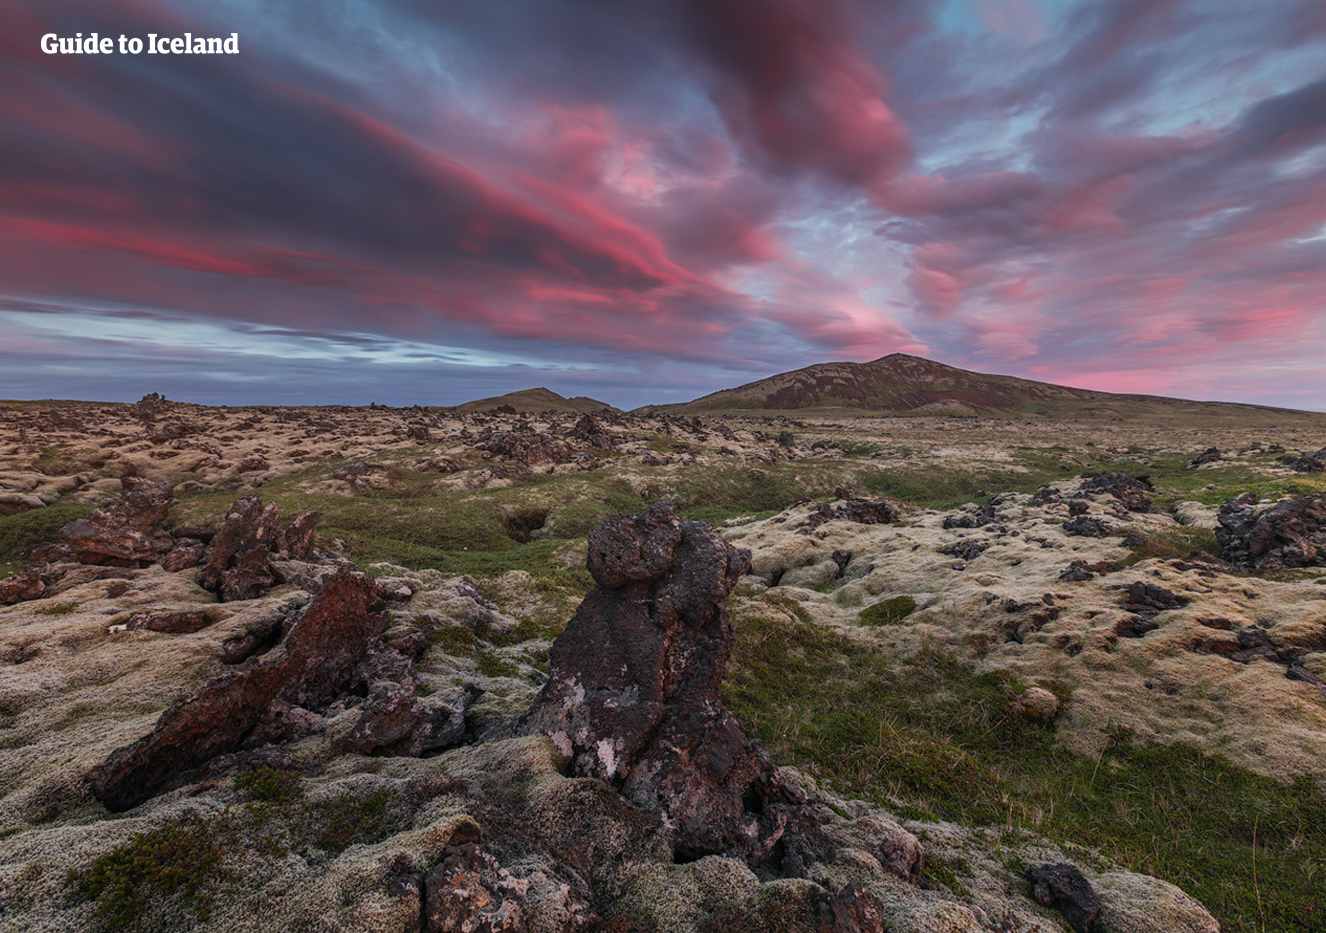 A lava field in the West of Iceland.